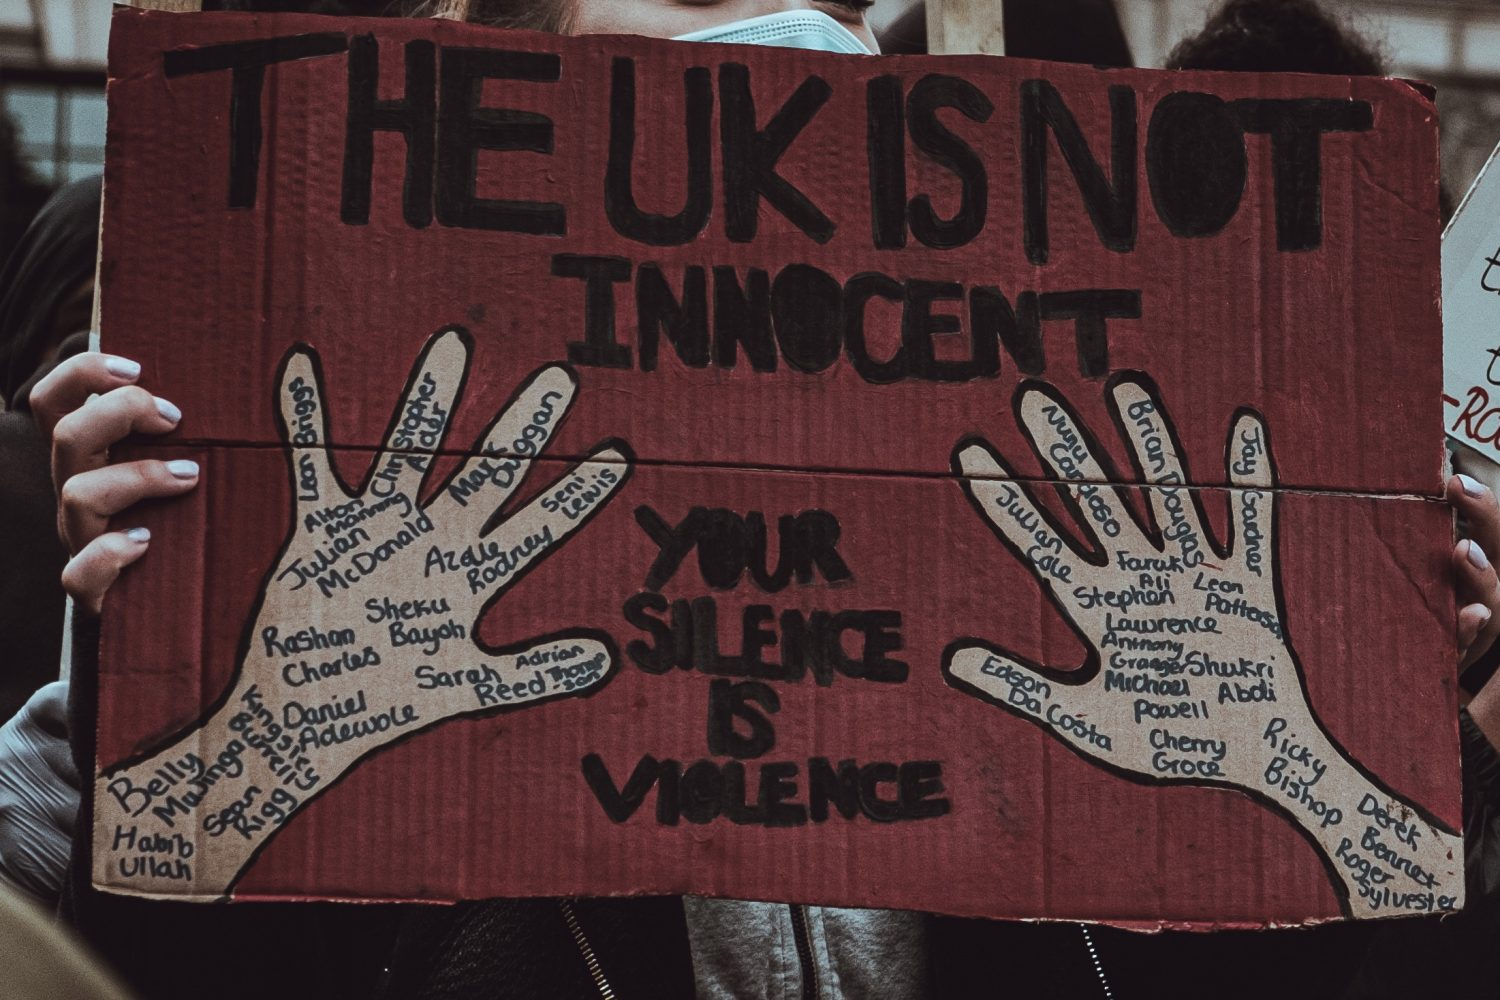 The UK Is Not Innocent